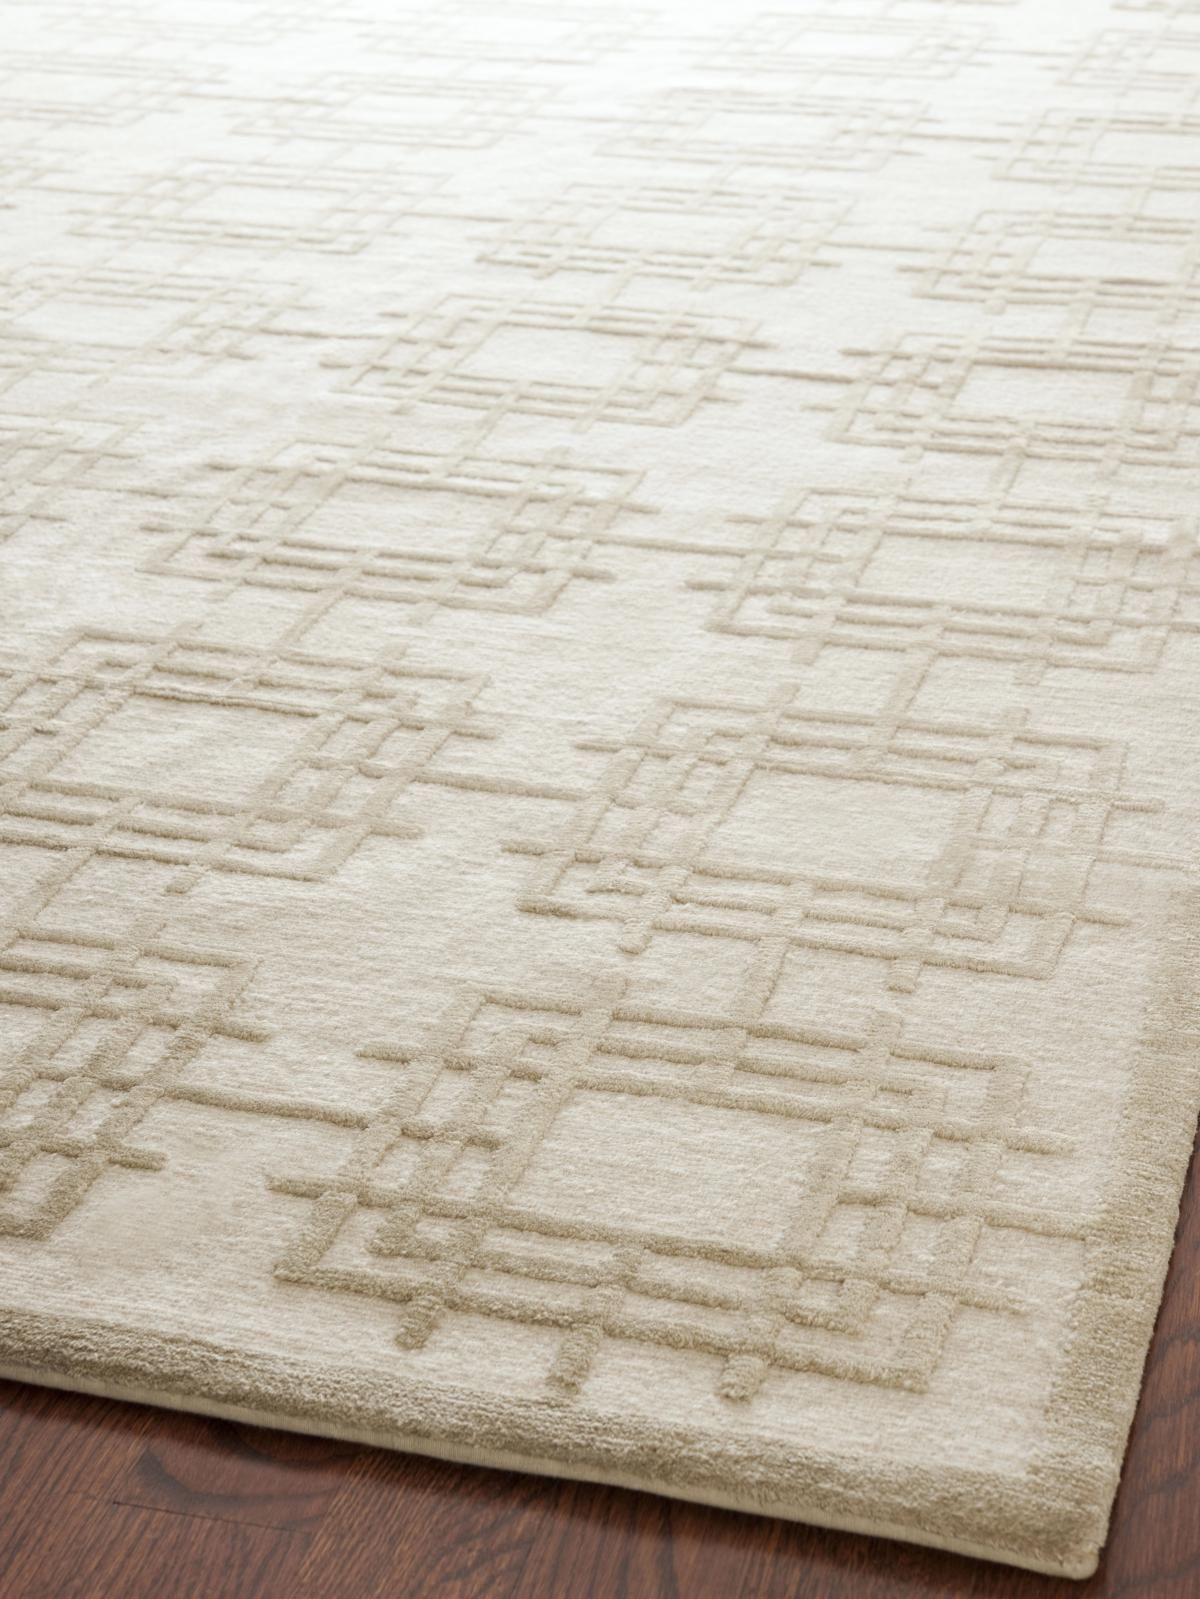 Rug Tob825d Safavieh Area Rugs Runner Wool And Silk Contemporary Ocean Room